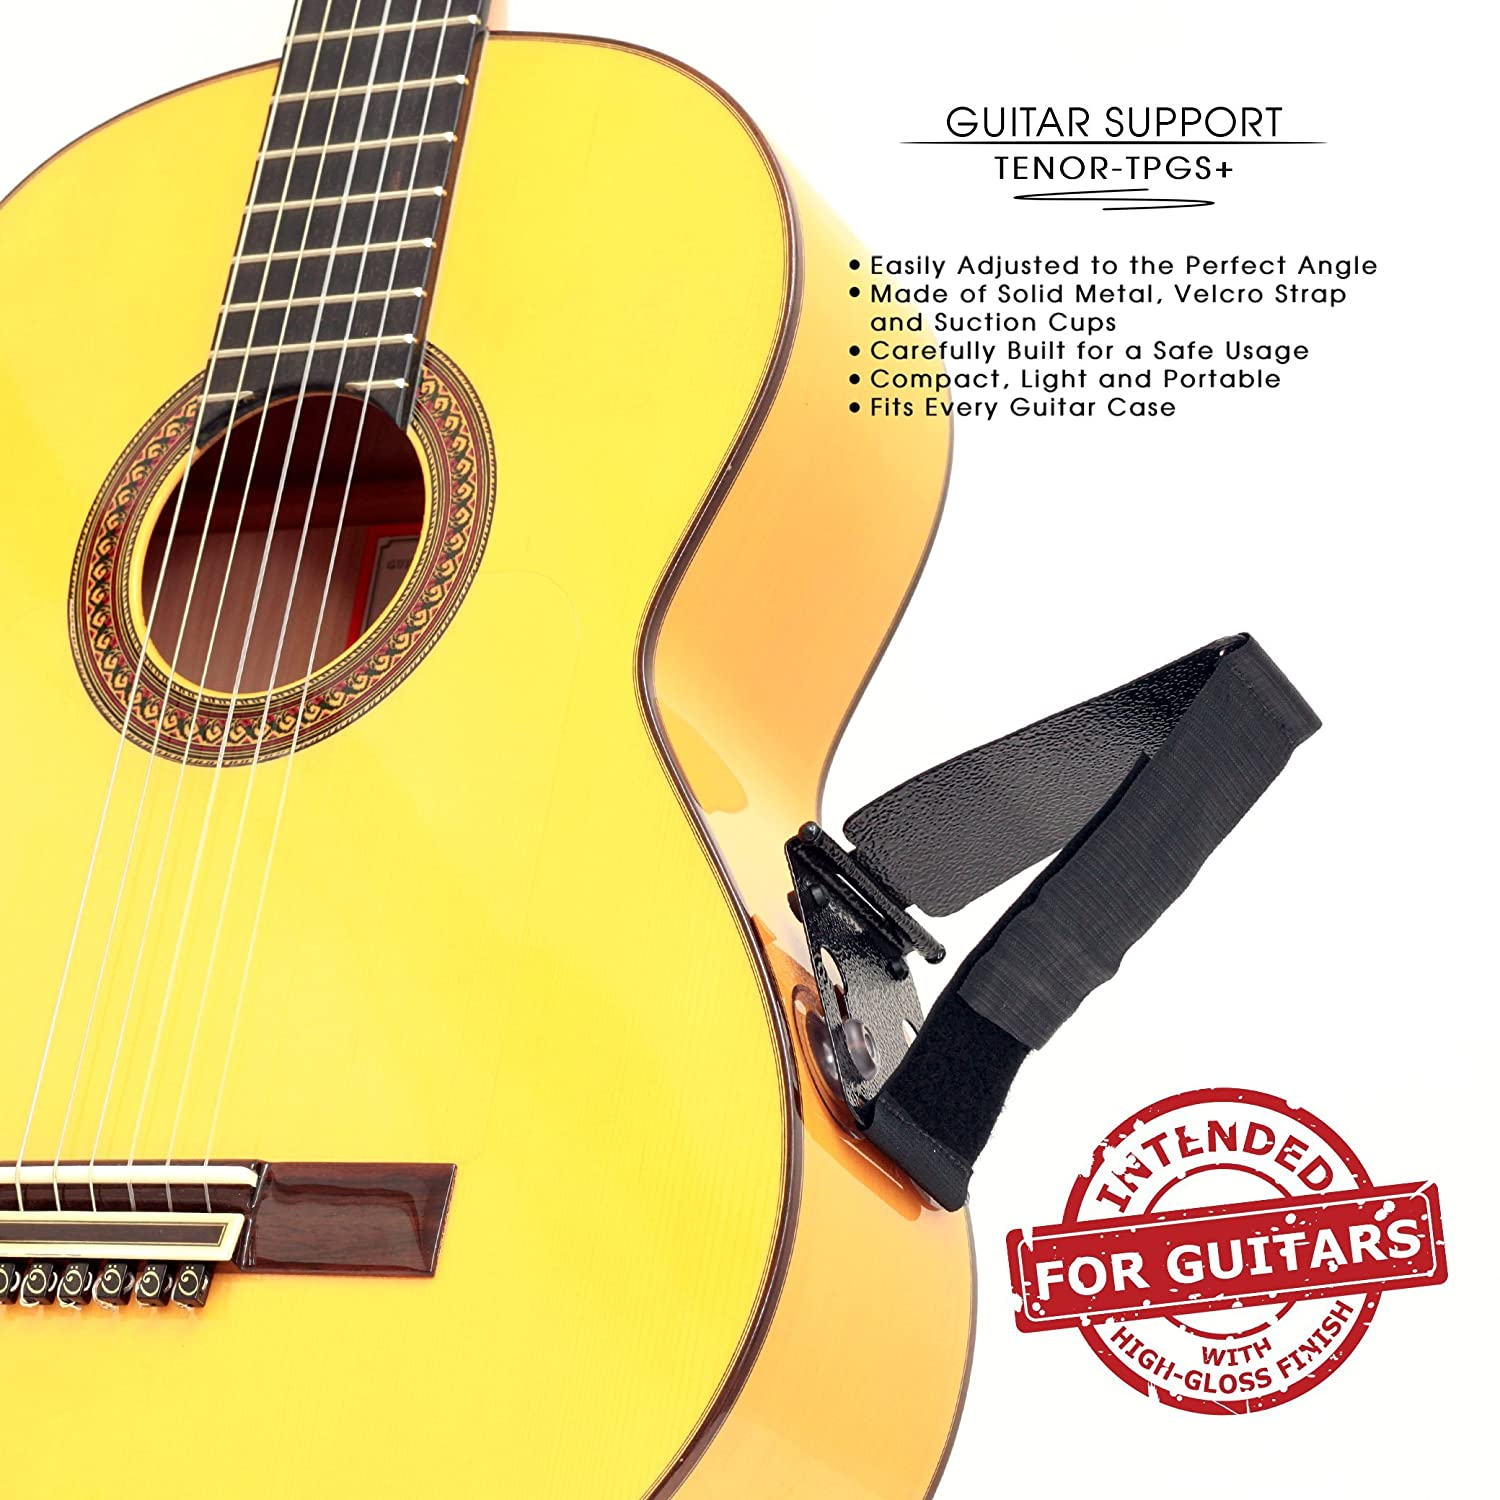 TENOR TPGS+ Professional Ergonomic Guitar Rest, Guitar Lifter, Guitar Foot Stool, Footstool Strap, Professional Posa Guitar Support for Classical, Flamenco, Acoustic or Arch Top Guitar Players TENOR-TPGS